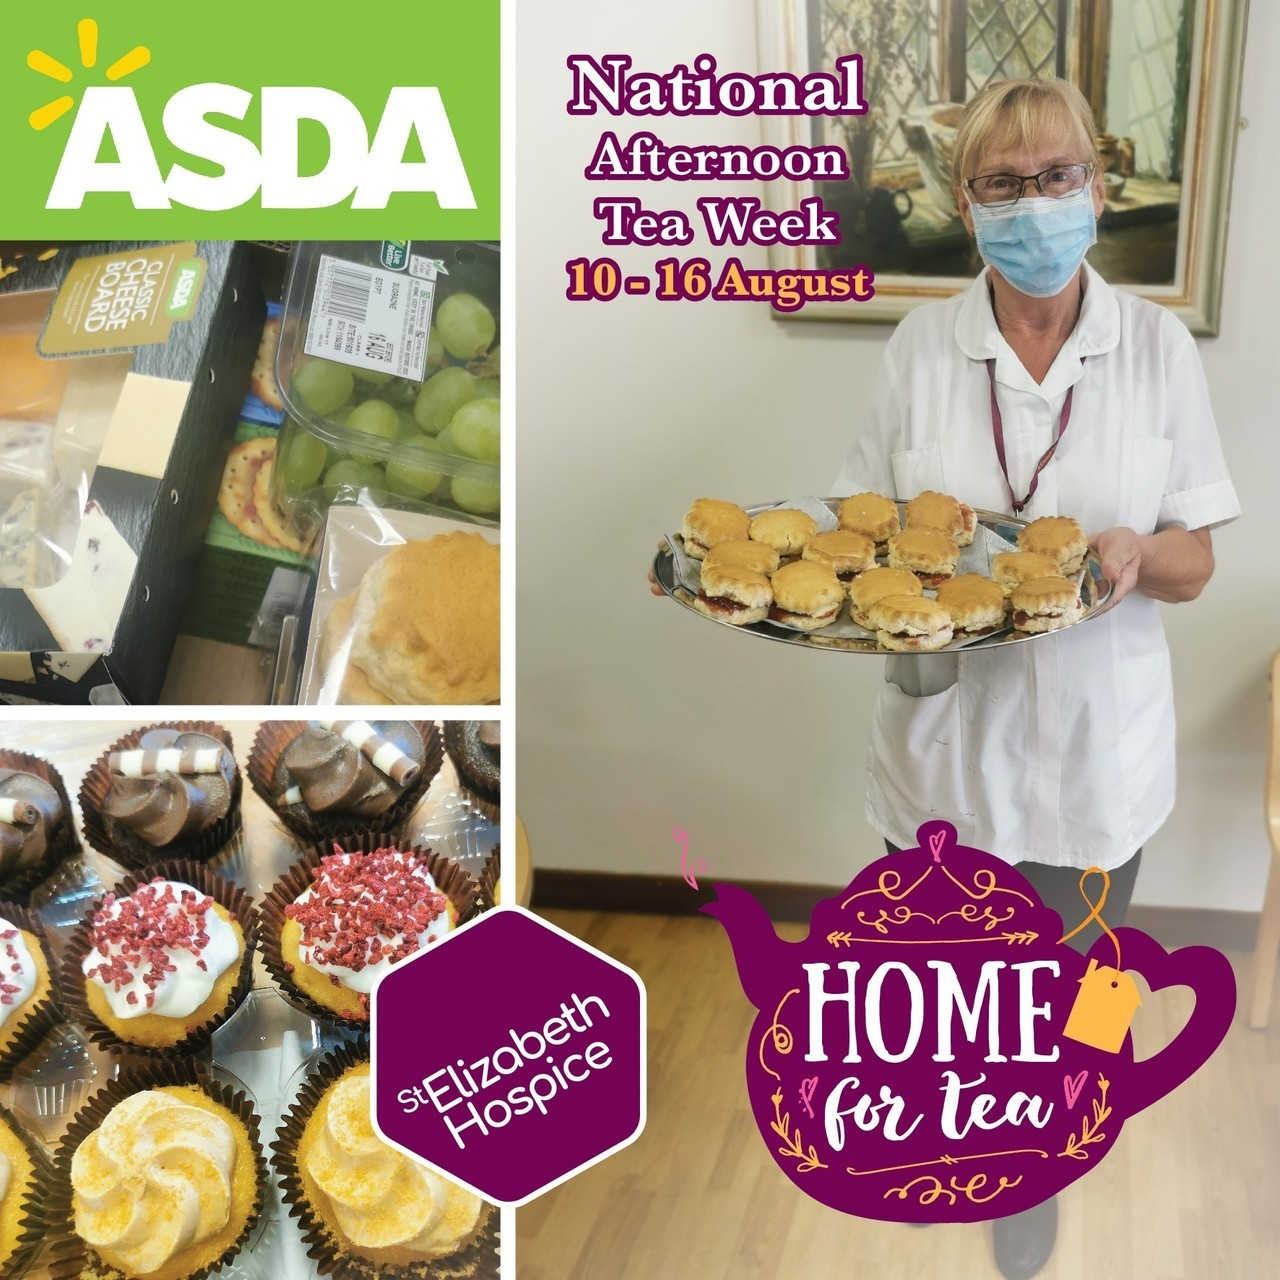 St Elizabeth Hospice National Afternoon Tea Week | Asda Ipswich Stoke Park